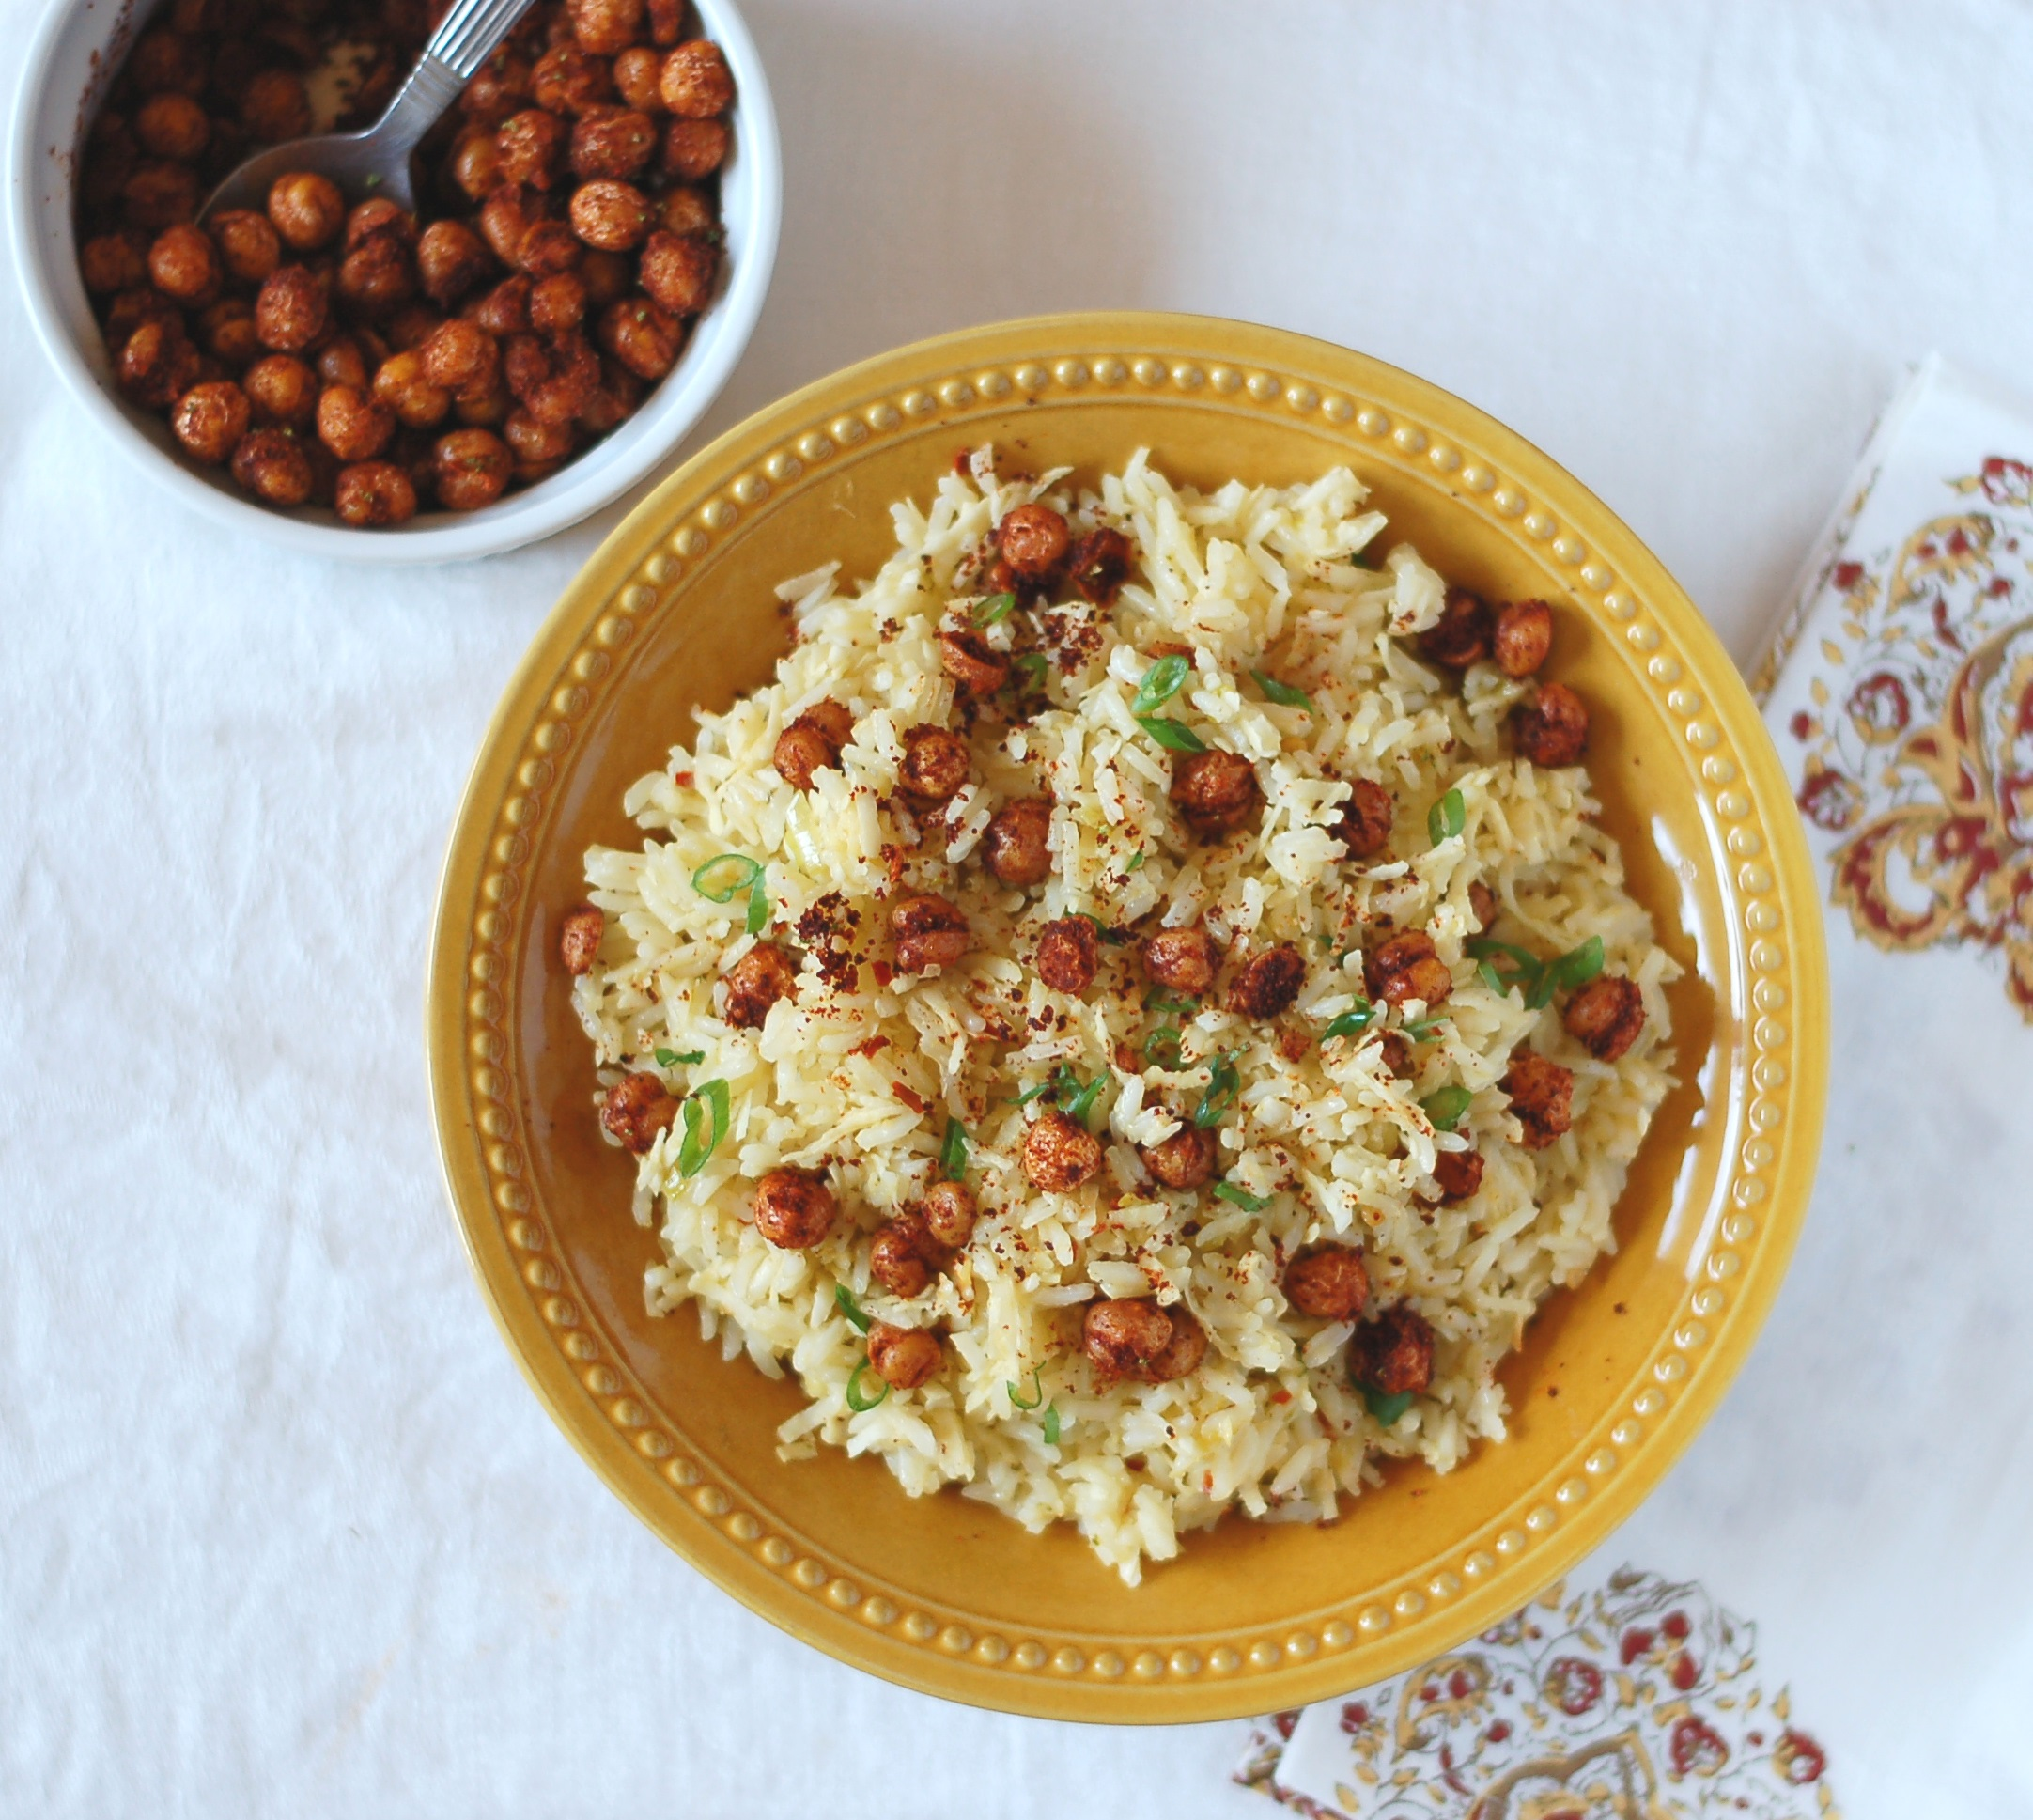 Coconut Rice with Toasted Chickpeas